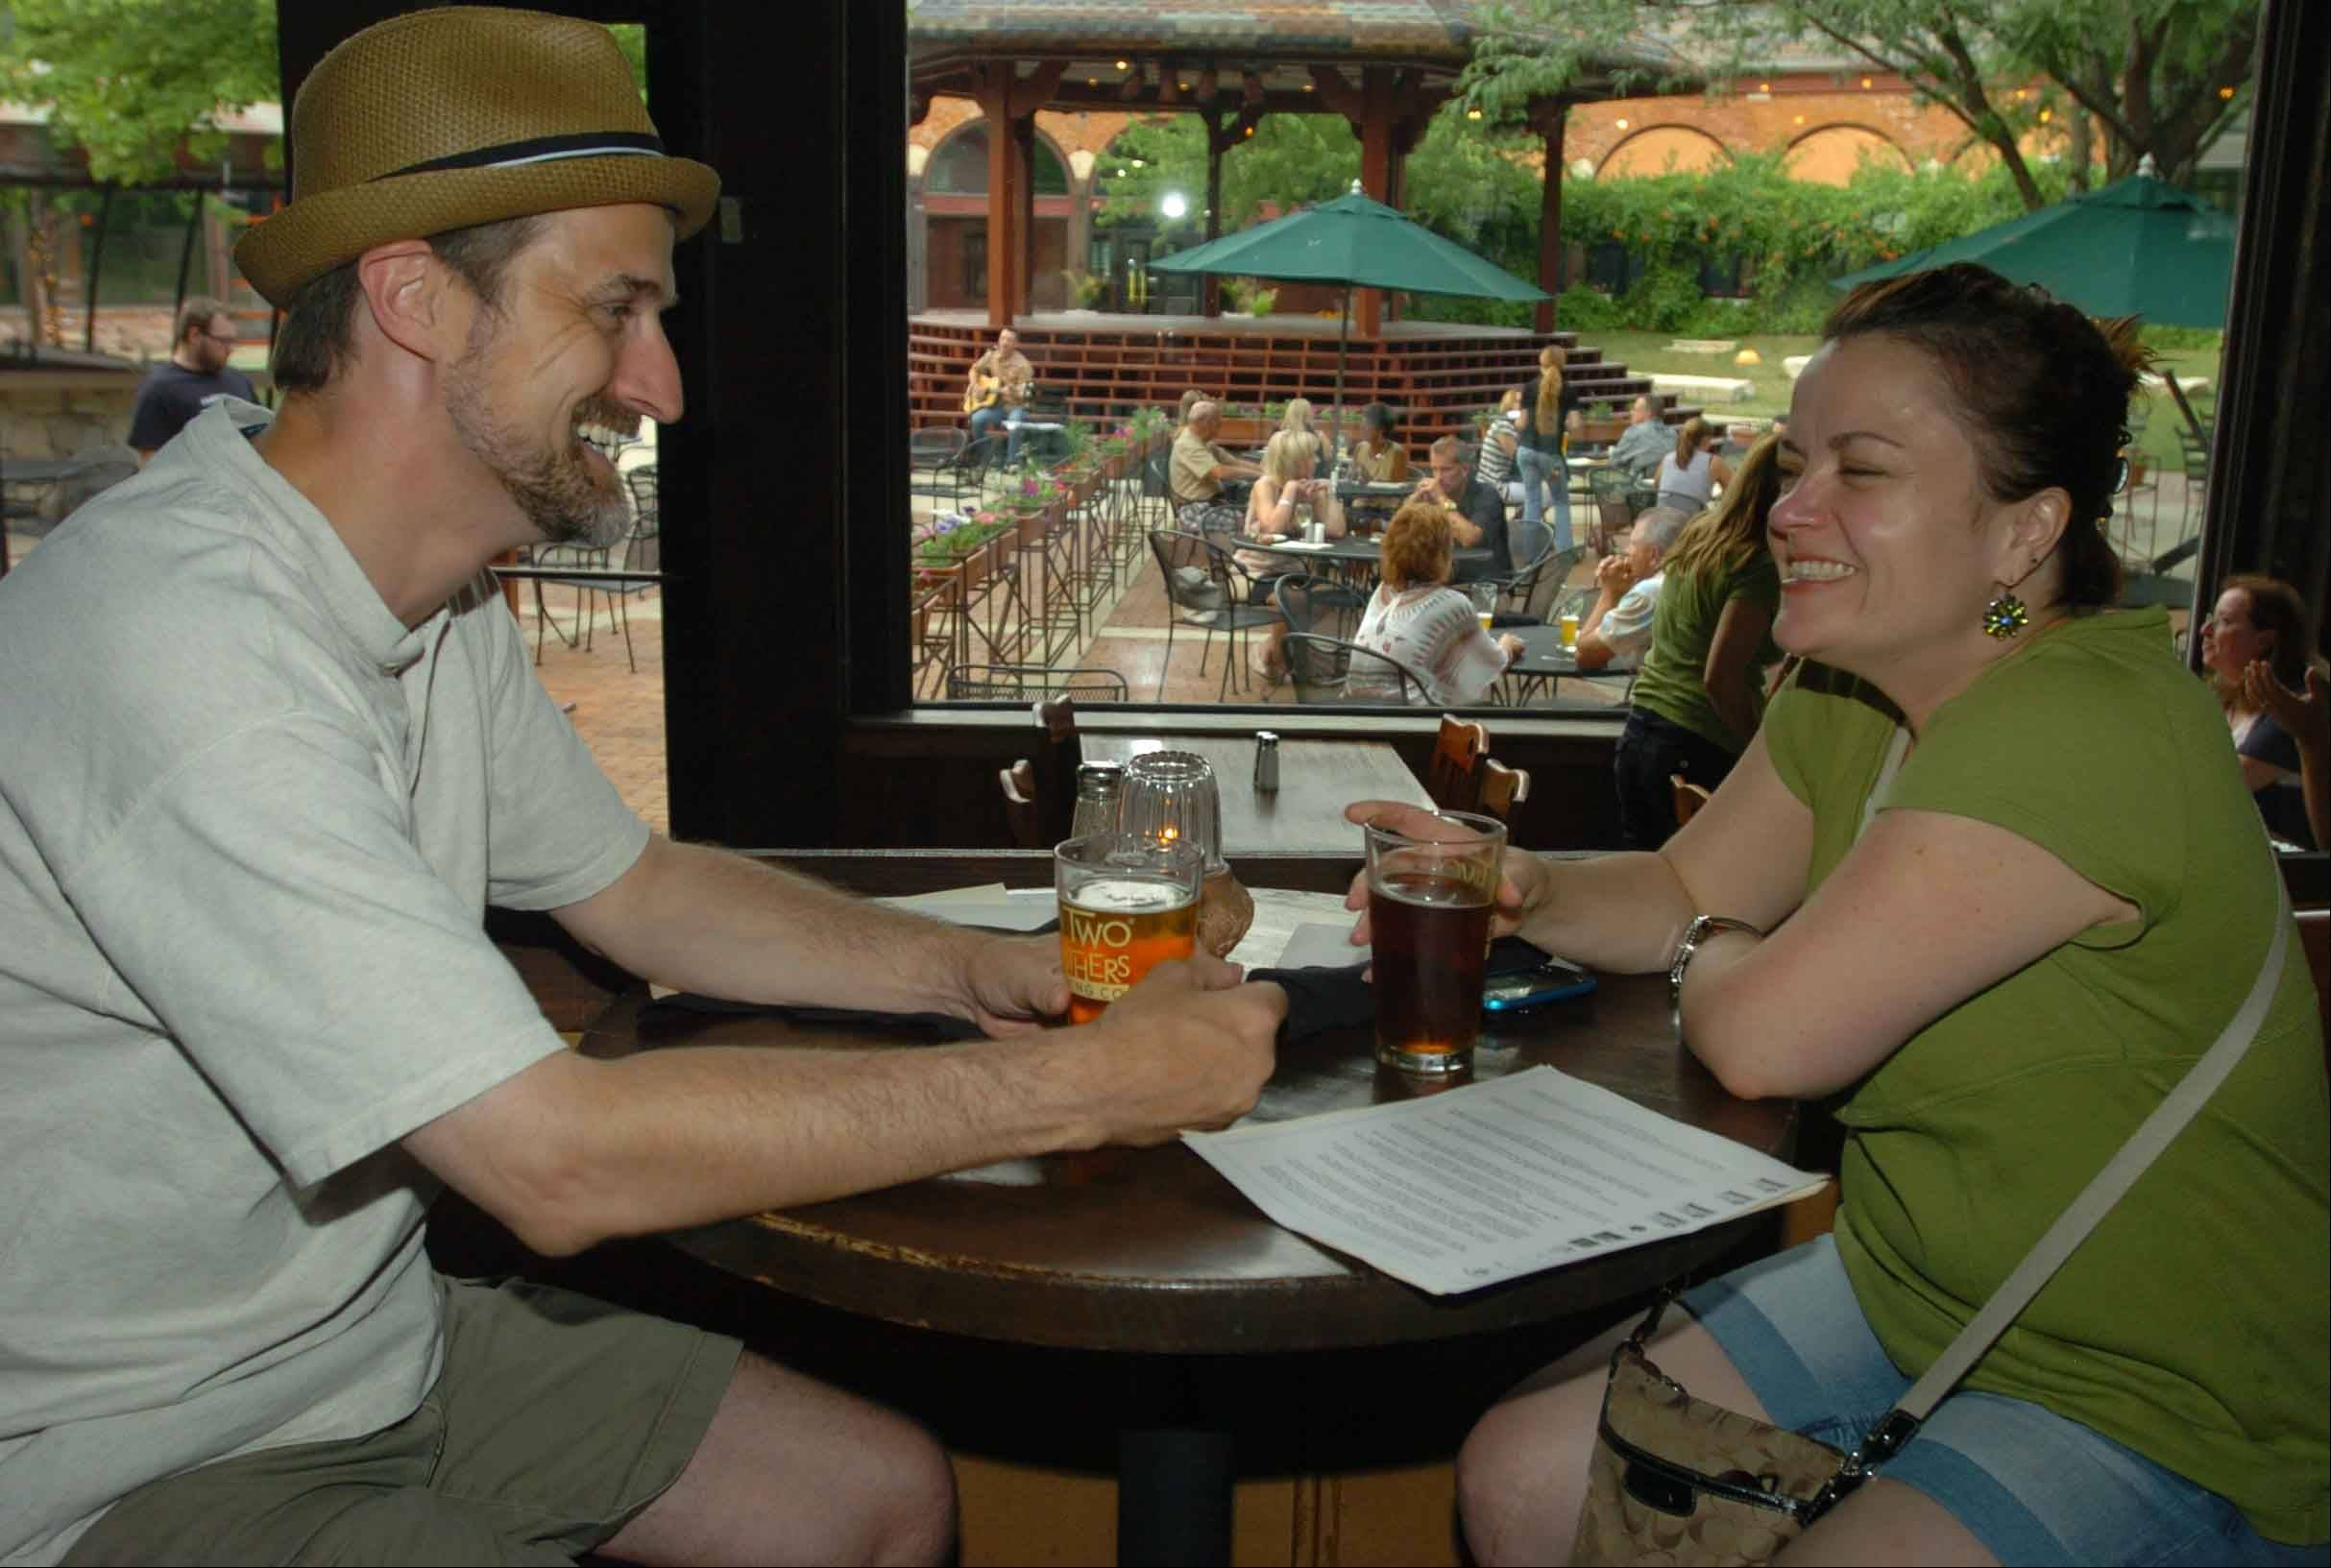 Patrick Zirkelbach and his wife, Robyn, enjoy a beer at Two Brothers Roundhouse in Aurora.